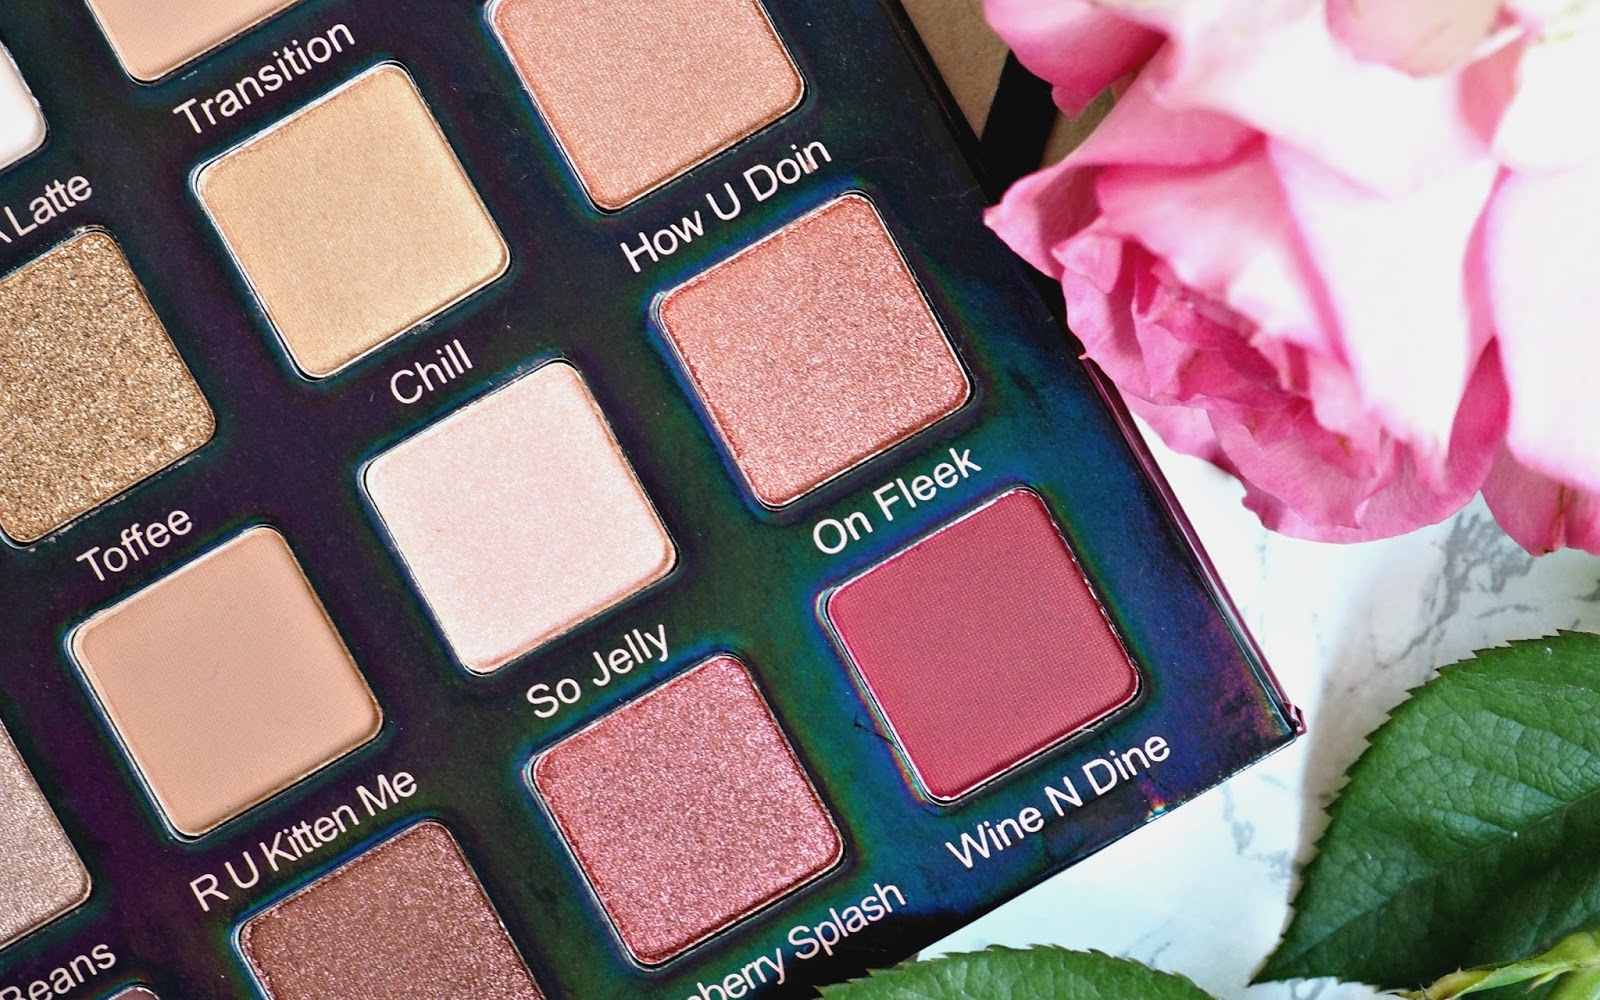 Violet Voss Holy Grail palette Review and Swatches pigmentation